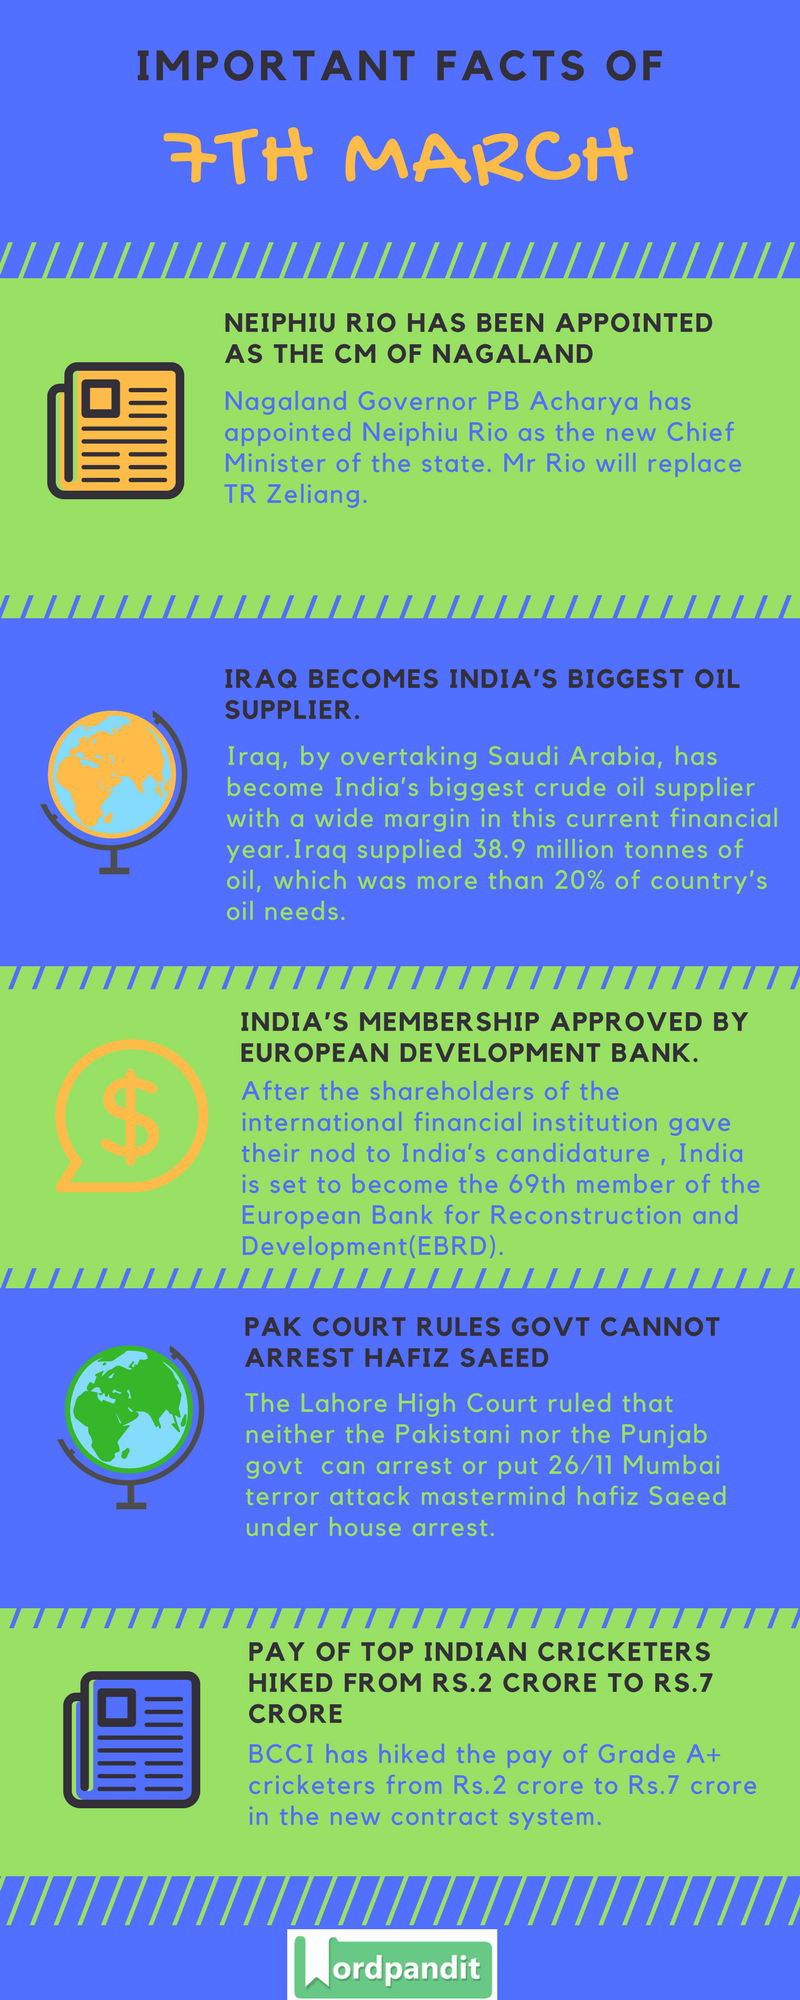 Daily Current Affairs 7 March 2018 Current Affairs Quiz March 7 2018 Current Affairs Infographic